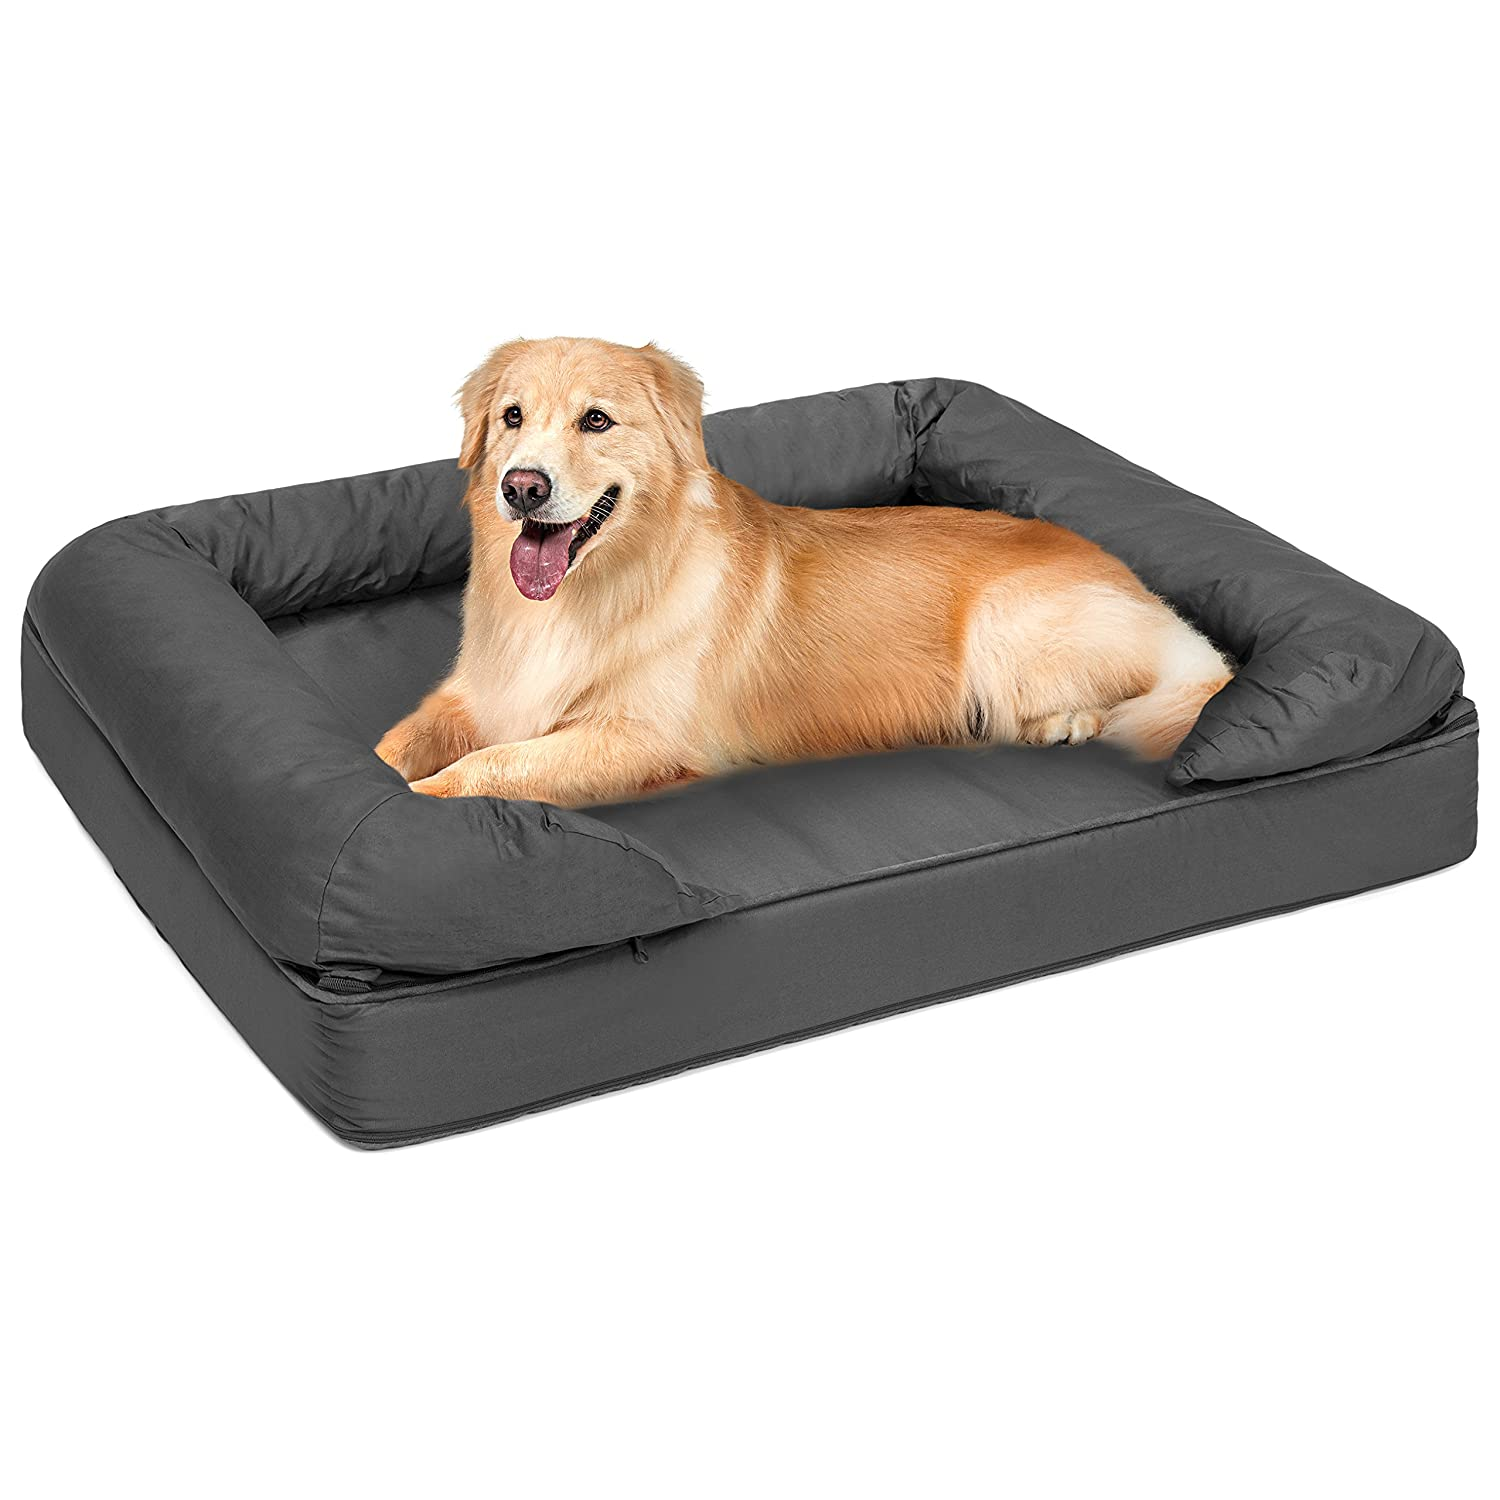 Best Choice Products Large Orthopedic Pet Sofa Bed Mattress w Comfortable Memory Foam for Dog, Cat, and Puppy